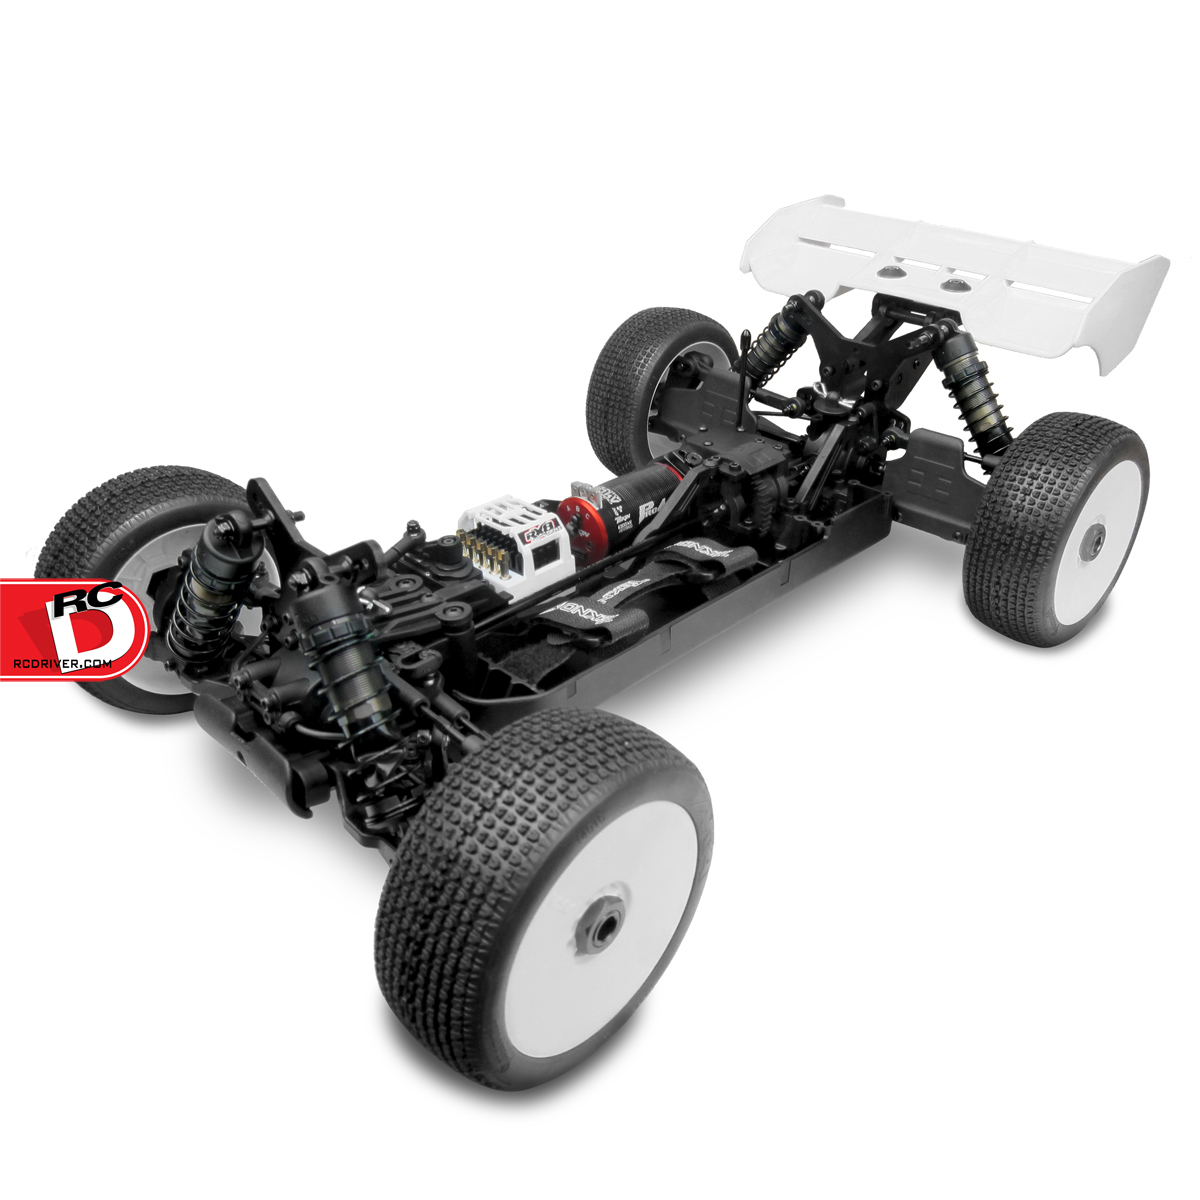 TeknoRC EB48SL Electric 1/8th 4WD Competition 'Super Light' Buggy